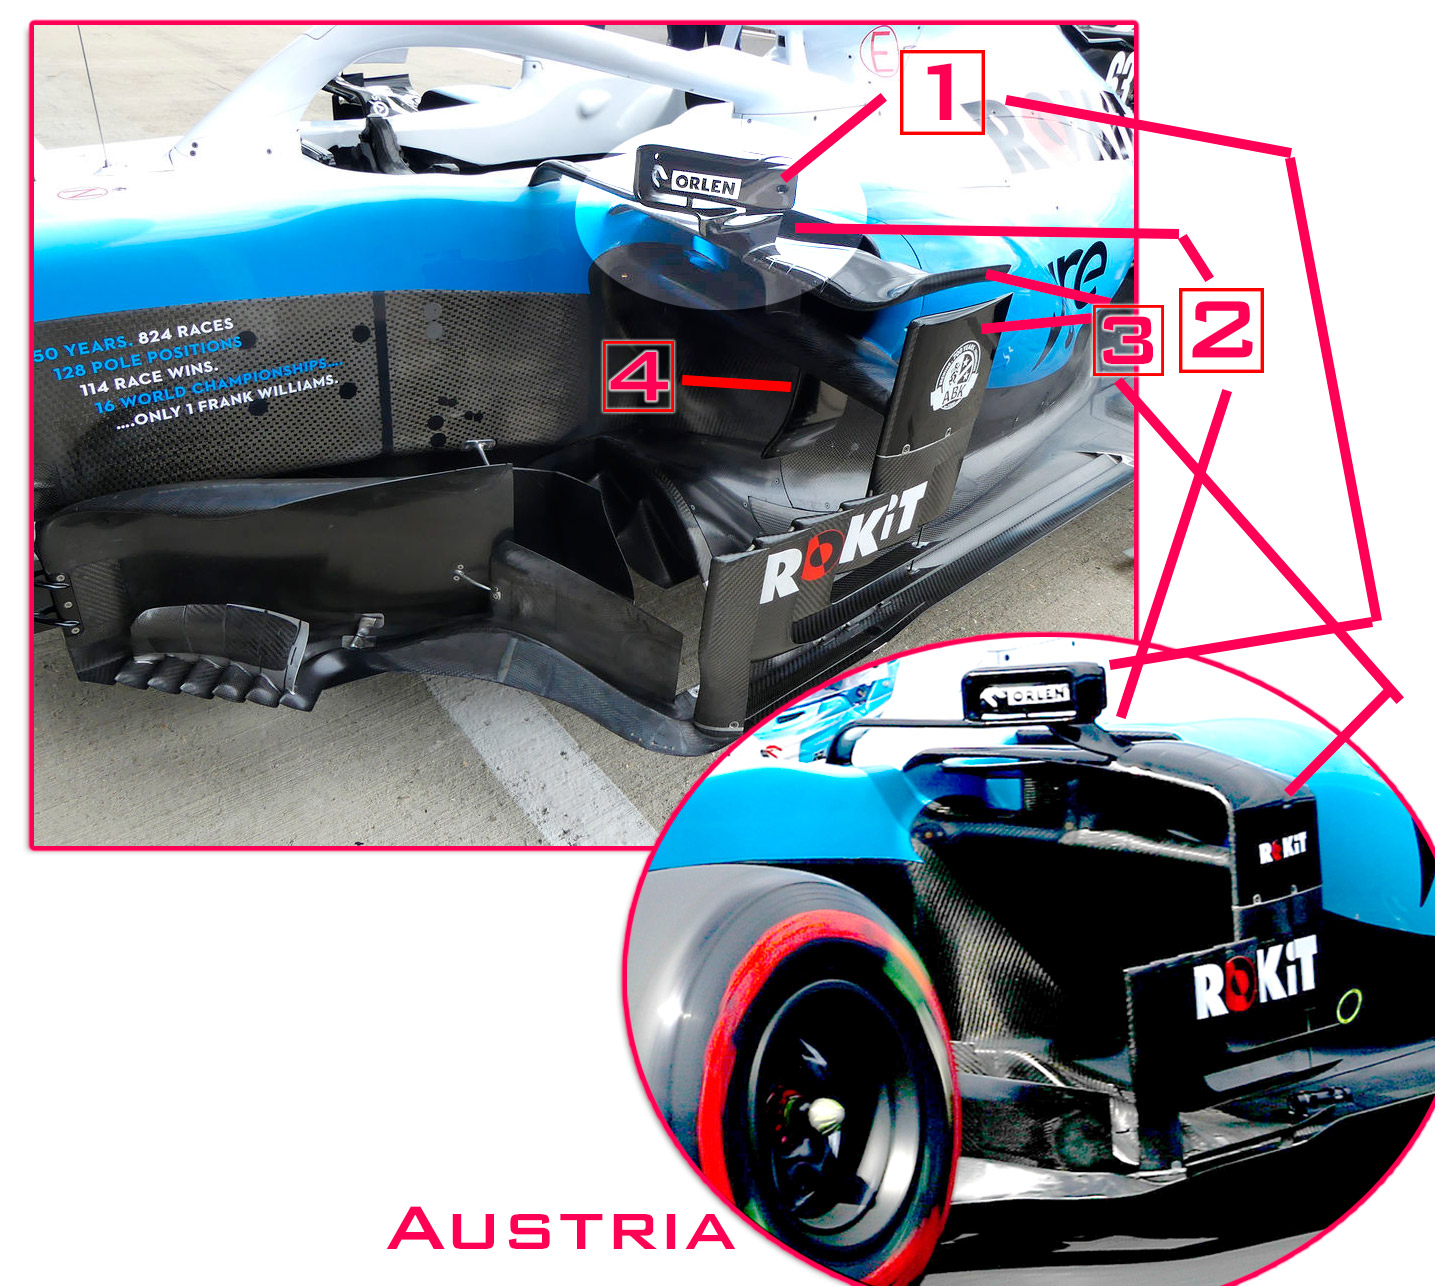 williams-nuevo-bargeboard_0.jpg